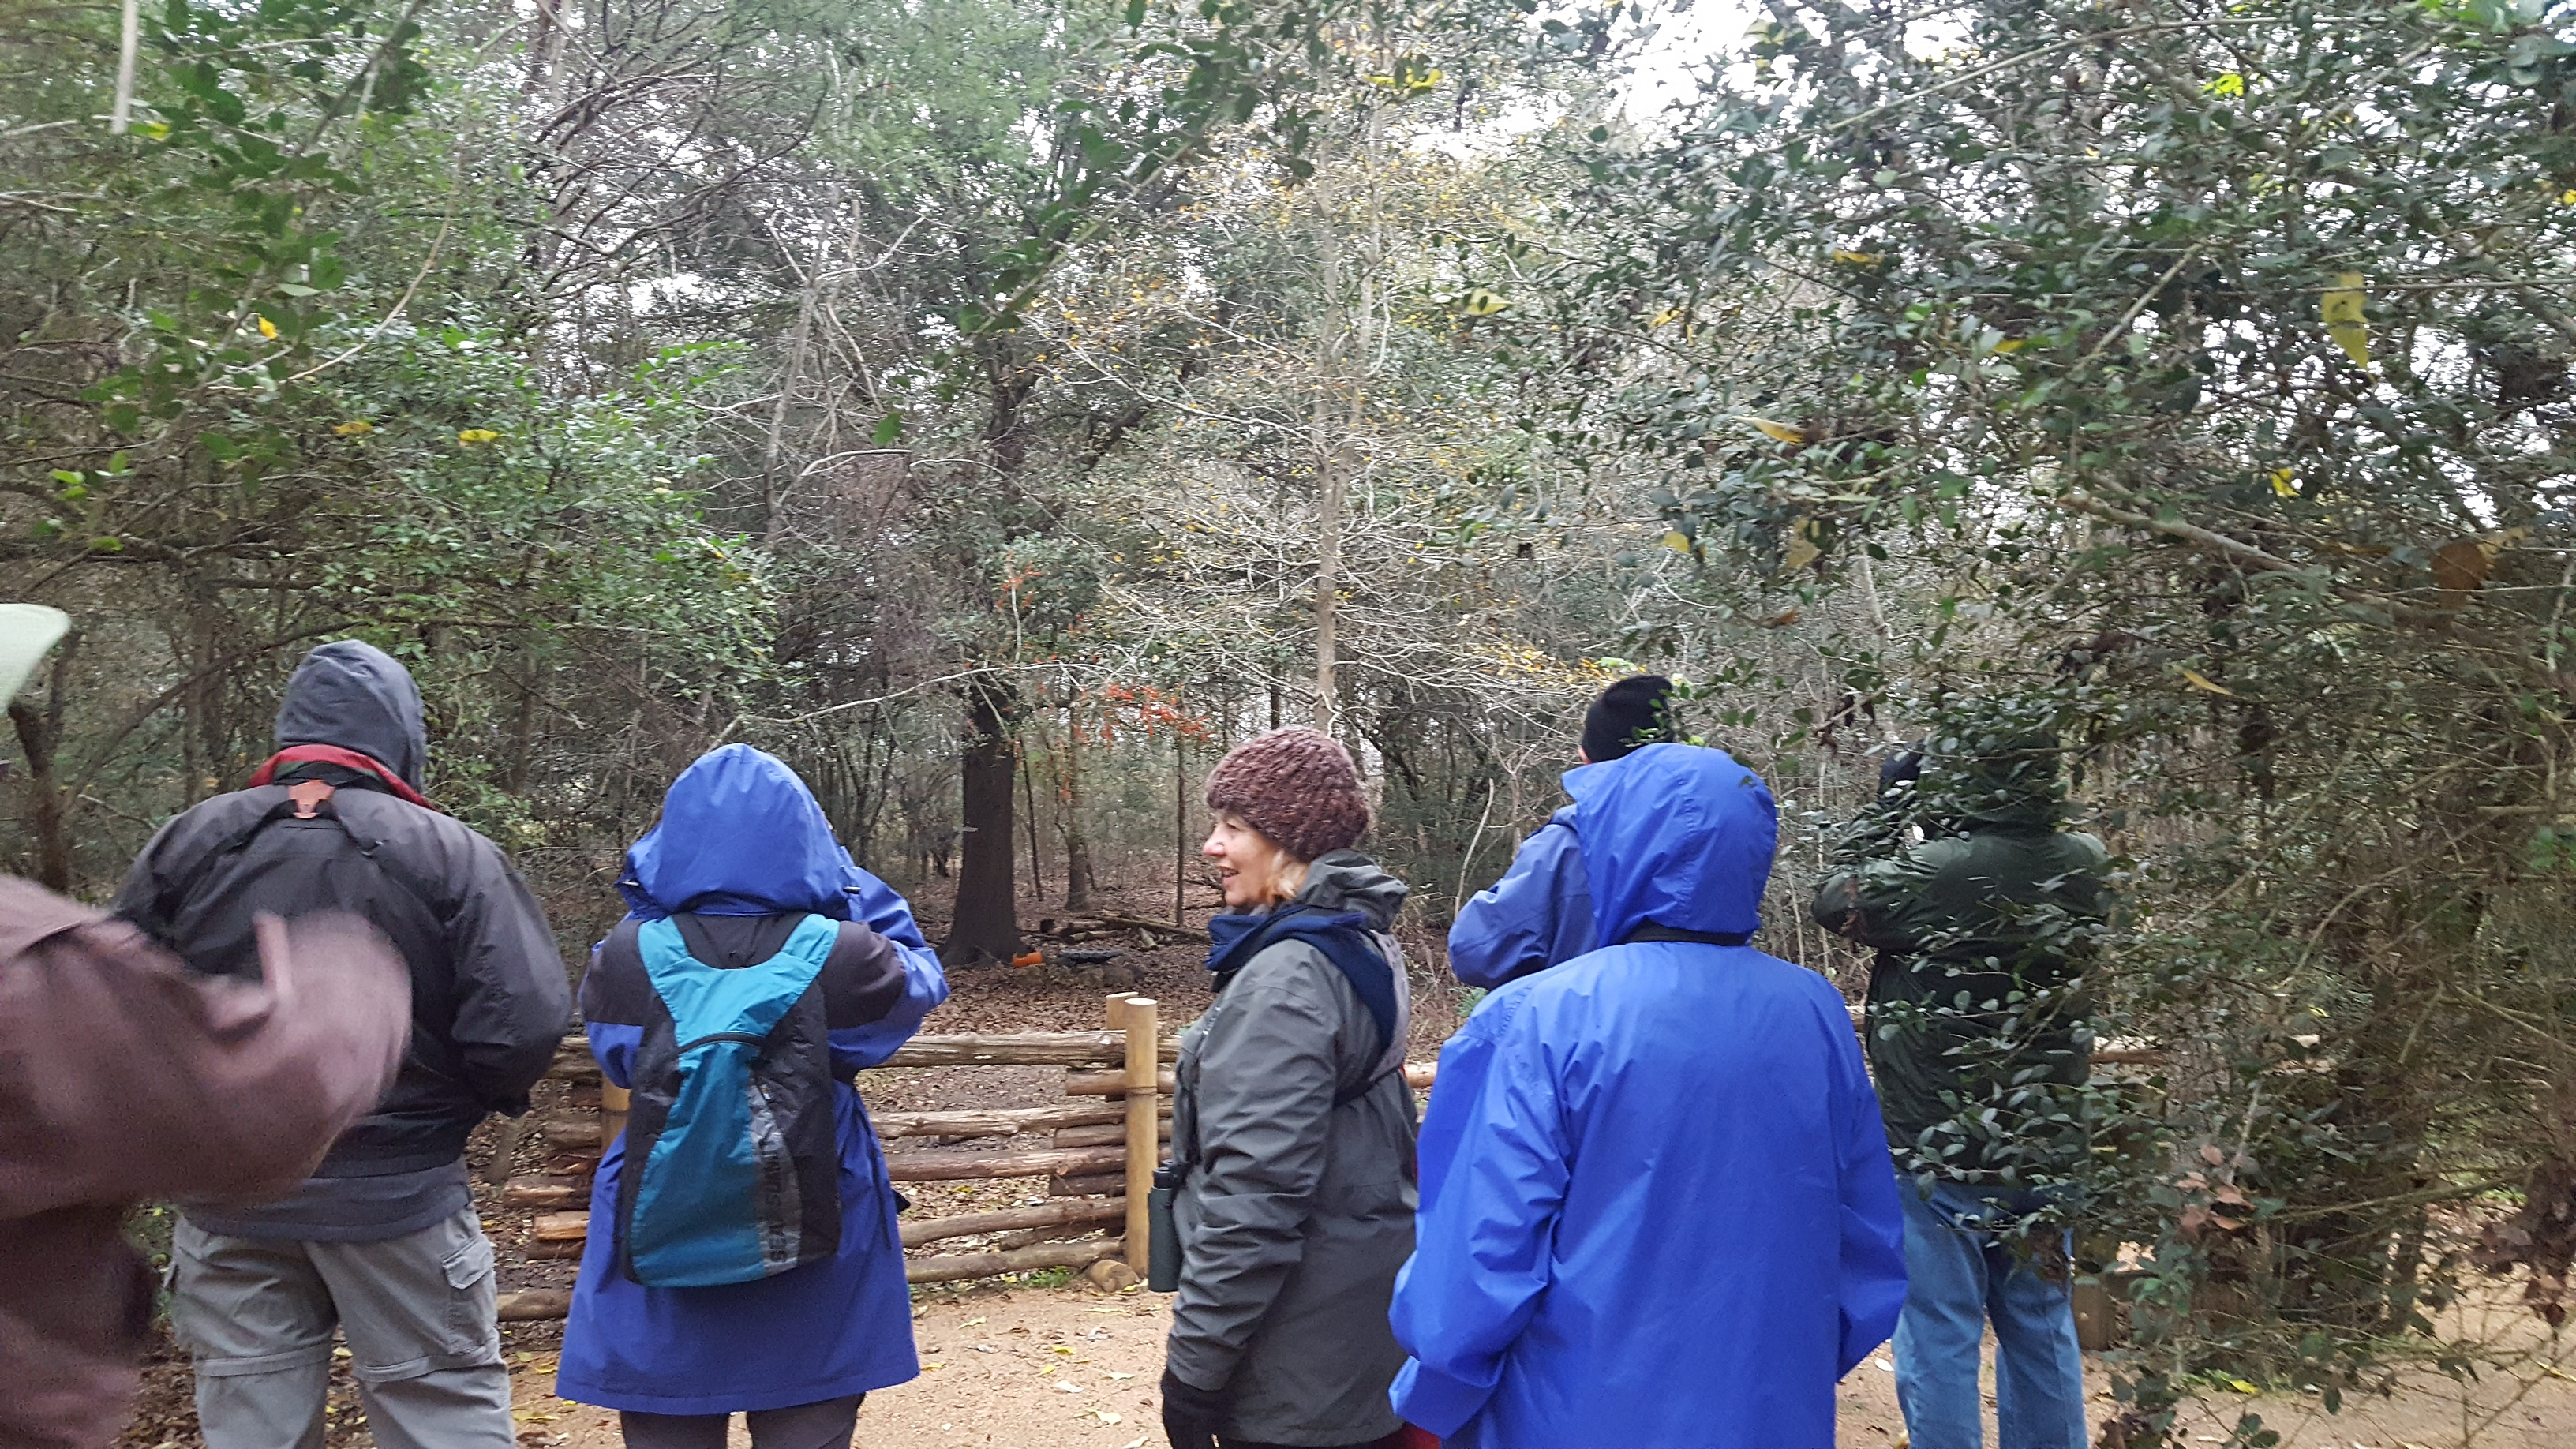 Bird Walk Seabourne Creek Nature Park Photo by Kimberly Farou 1/2/19